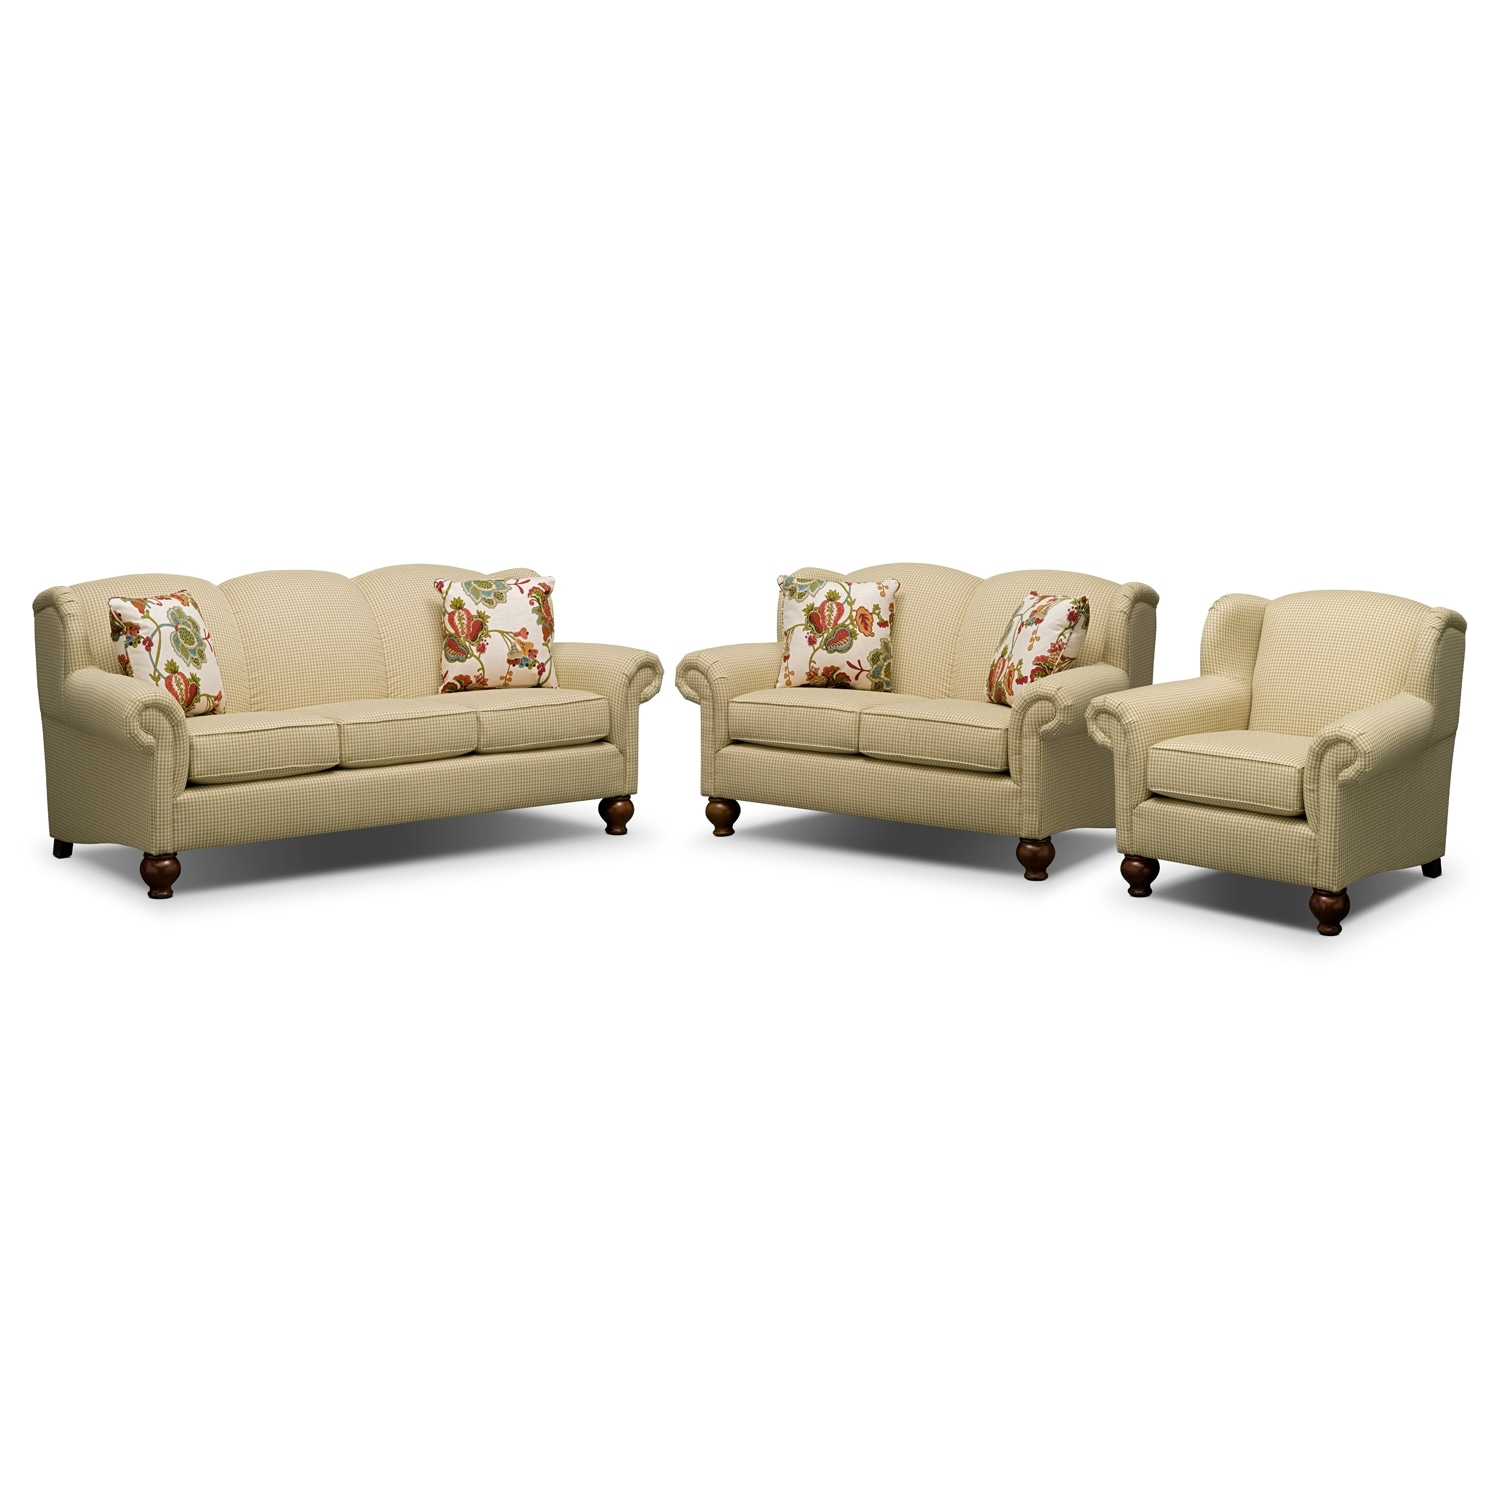 Living Room Furniture - Charlotte II 3 Pc. Living Room